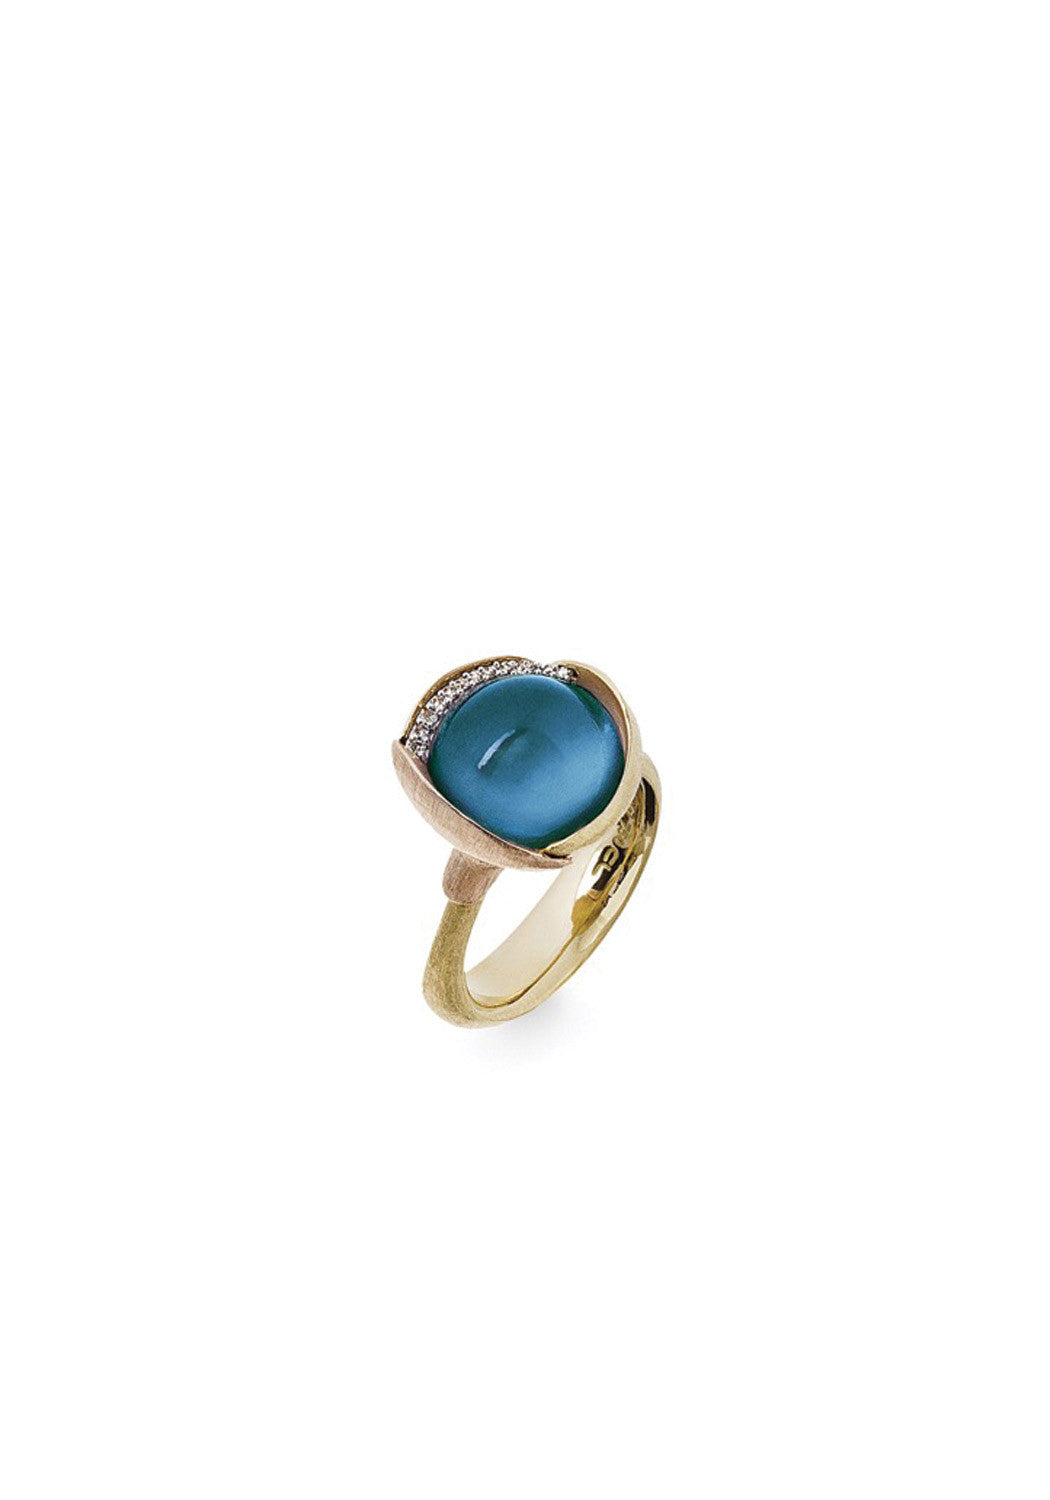 OLE LYNGGAARD Lotus London Blue Topaz & Diamond Ring